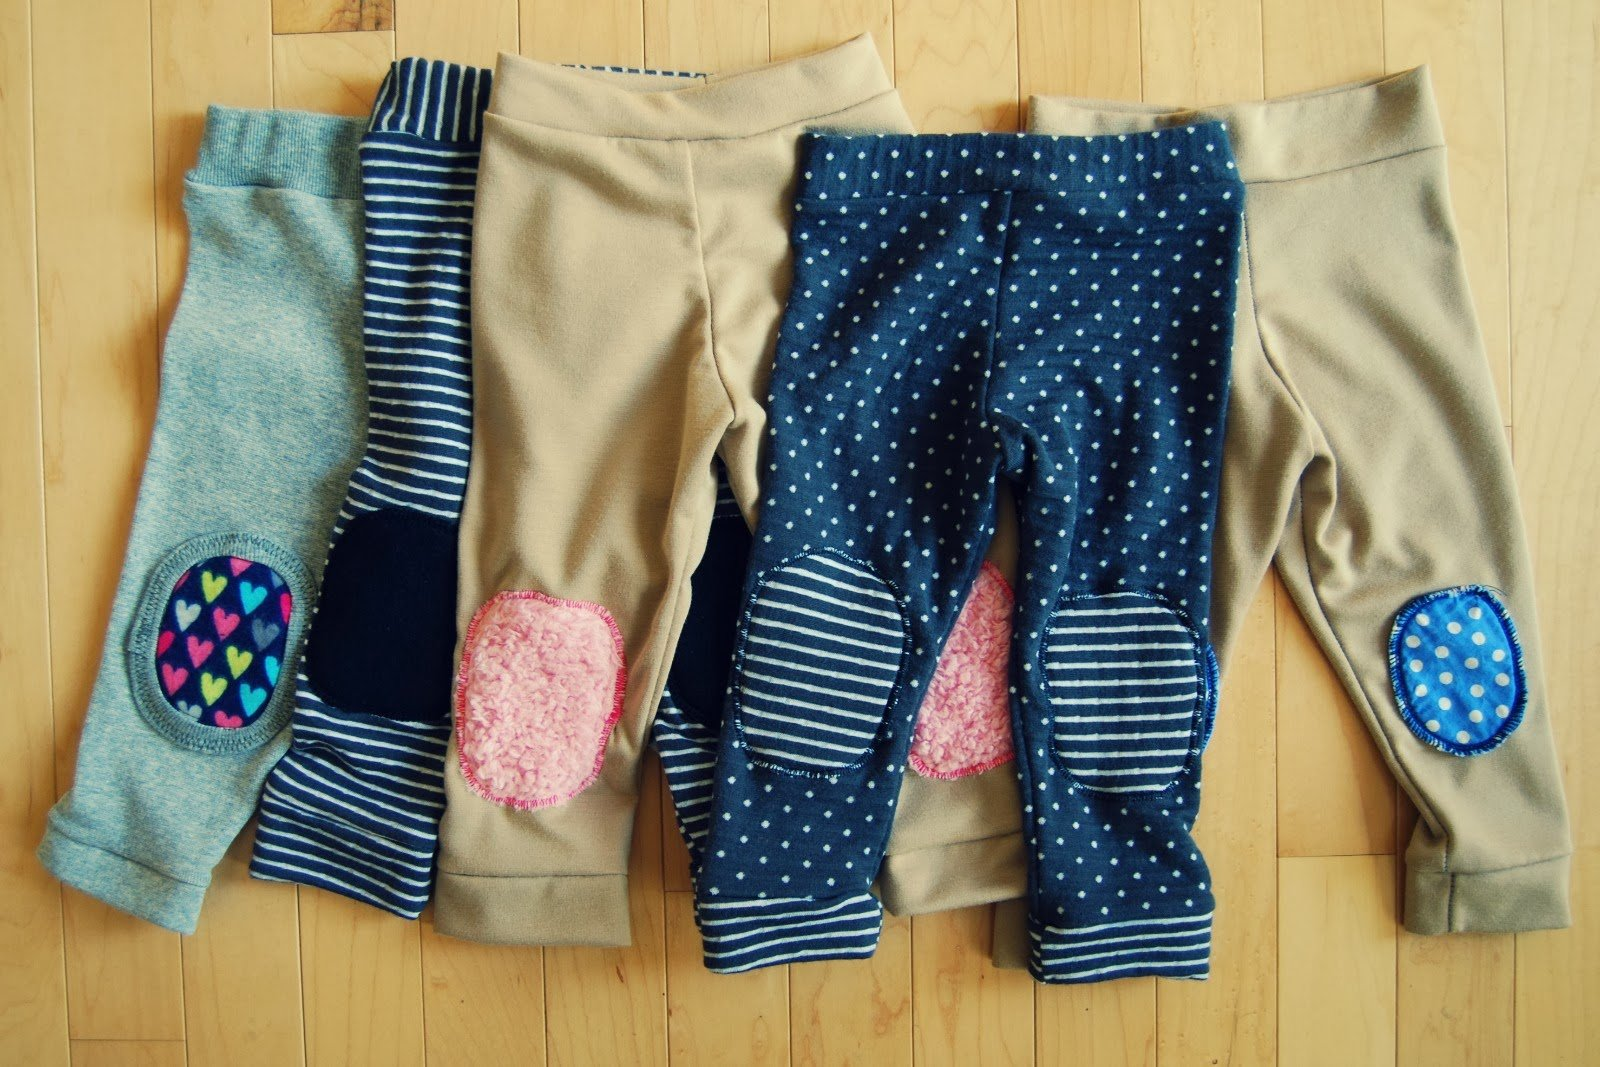 20 Diy Creative And Fun Knee Patches On Pants Page 4 Of 4